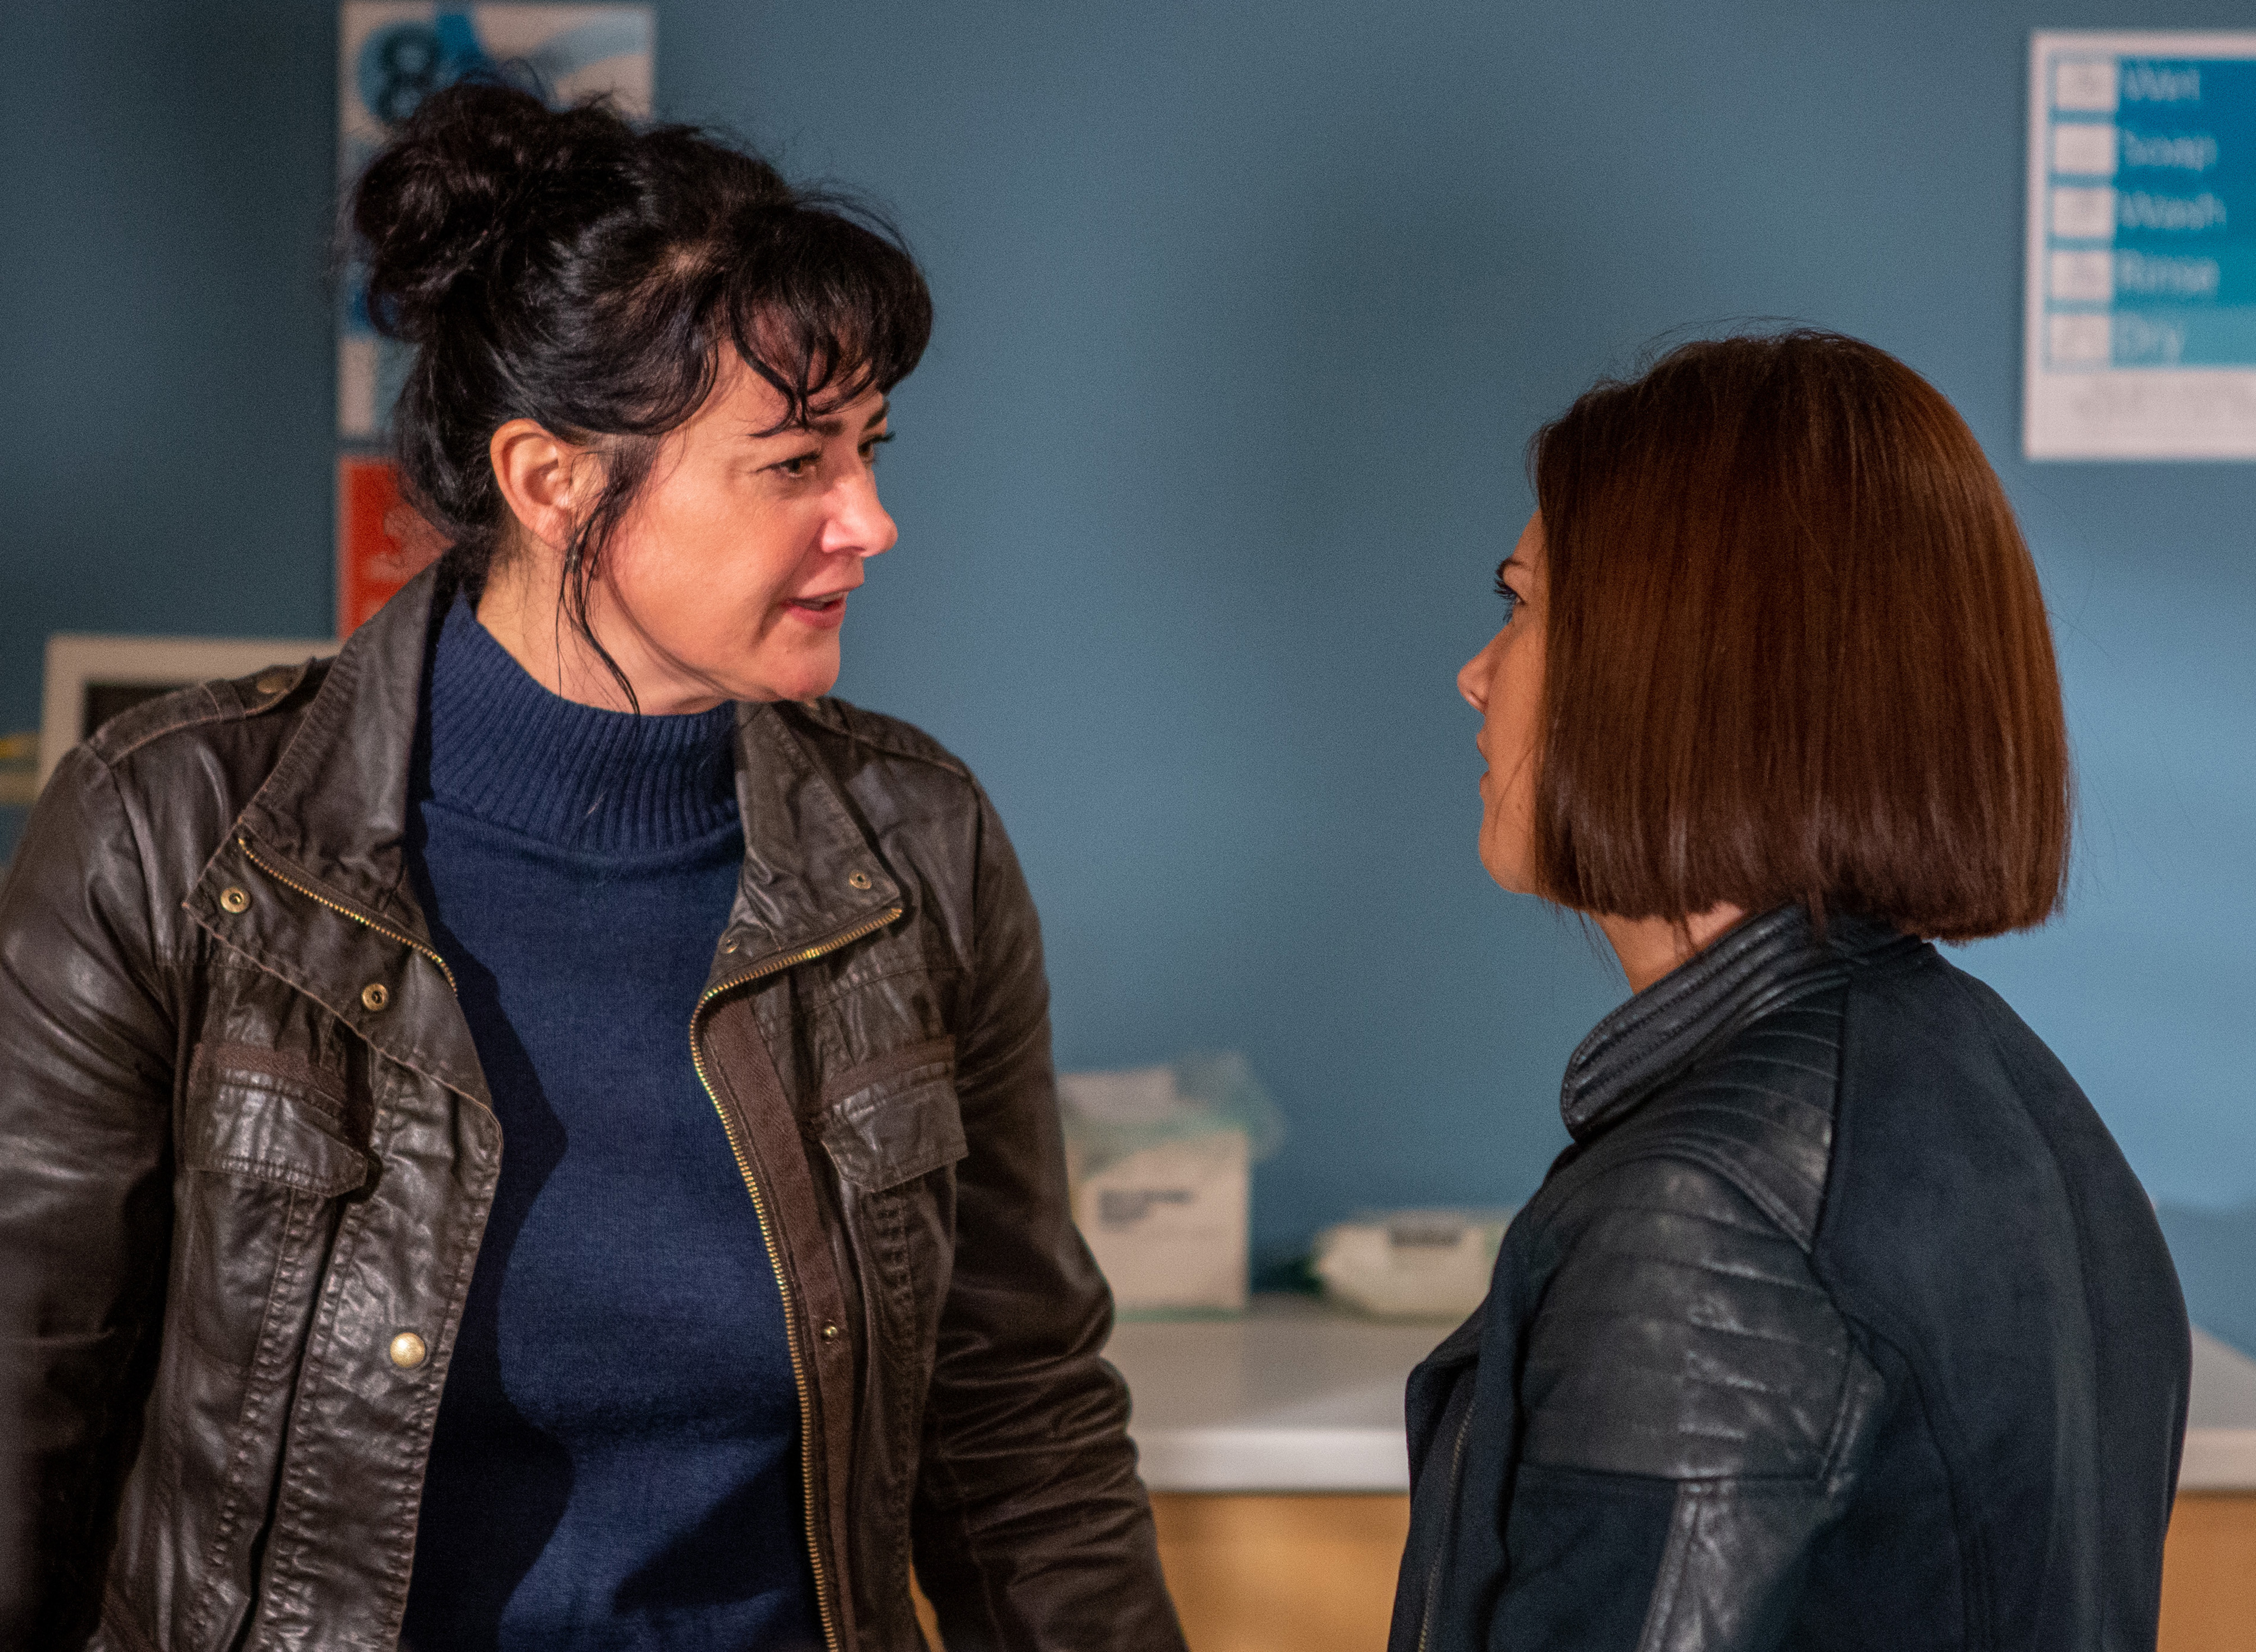 Emmerdale spoilers: Moira Dingle turns on Victoria Barton as she fears Matty will die